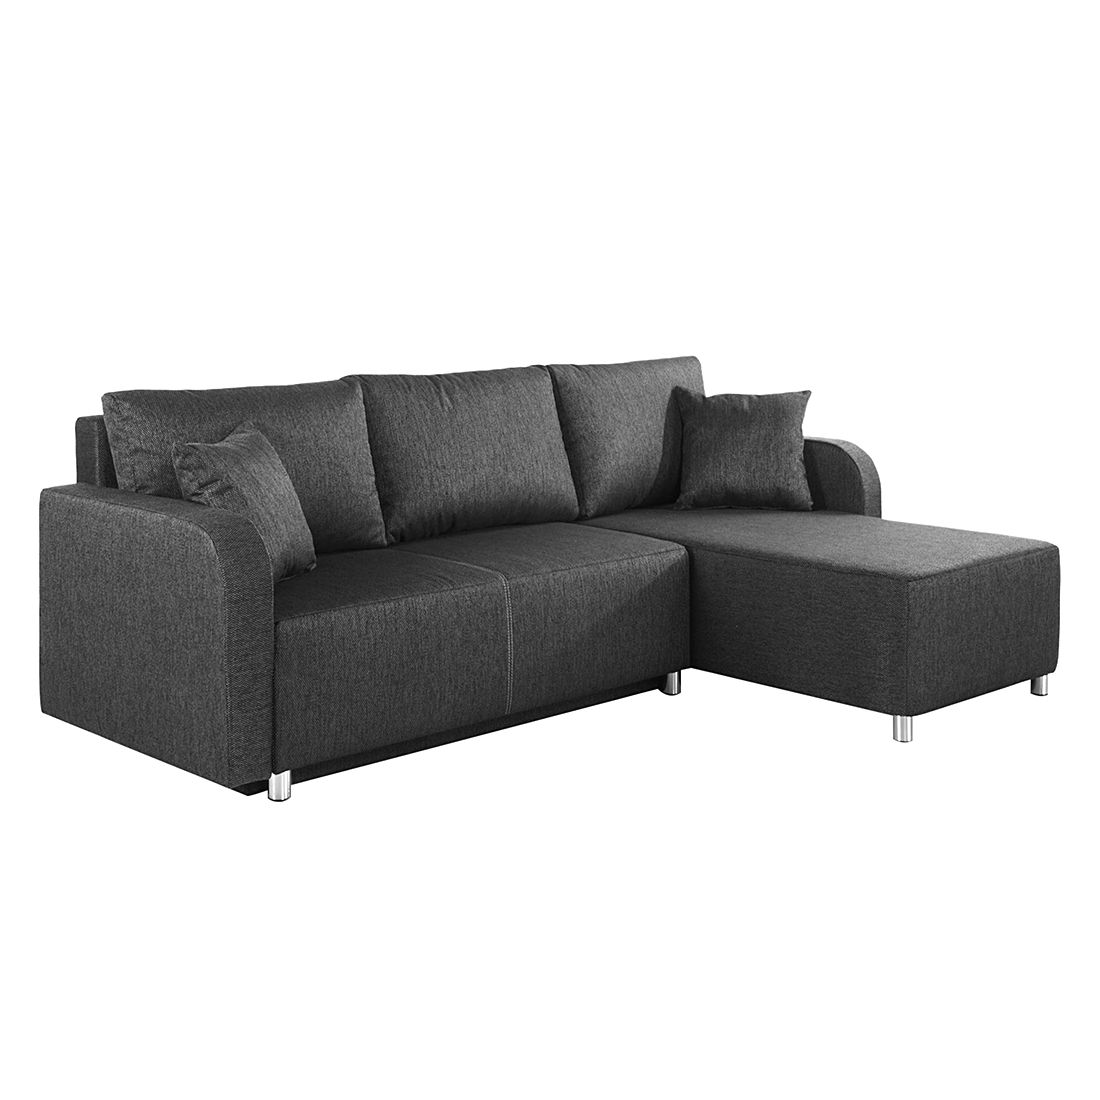 ecksofa tetony mit schlaffunktion webstoff grau ottomane beidseitig montie ebay. Black Bedroom Furniture Sets. Home Design Ideas